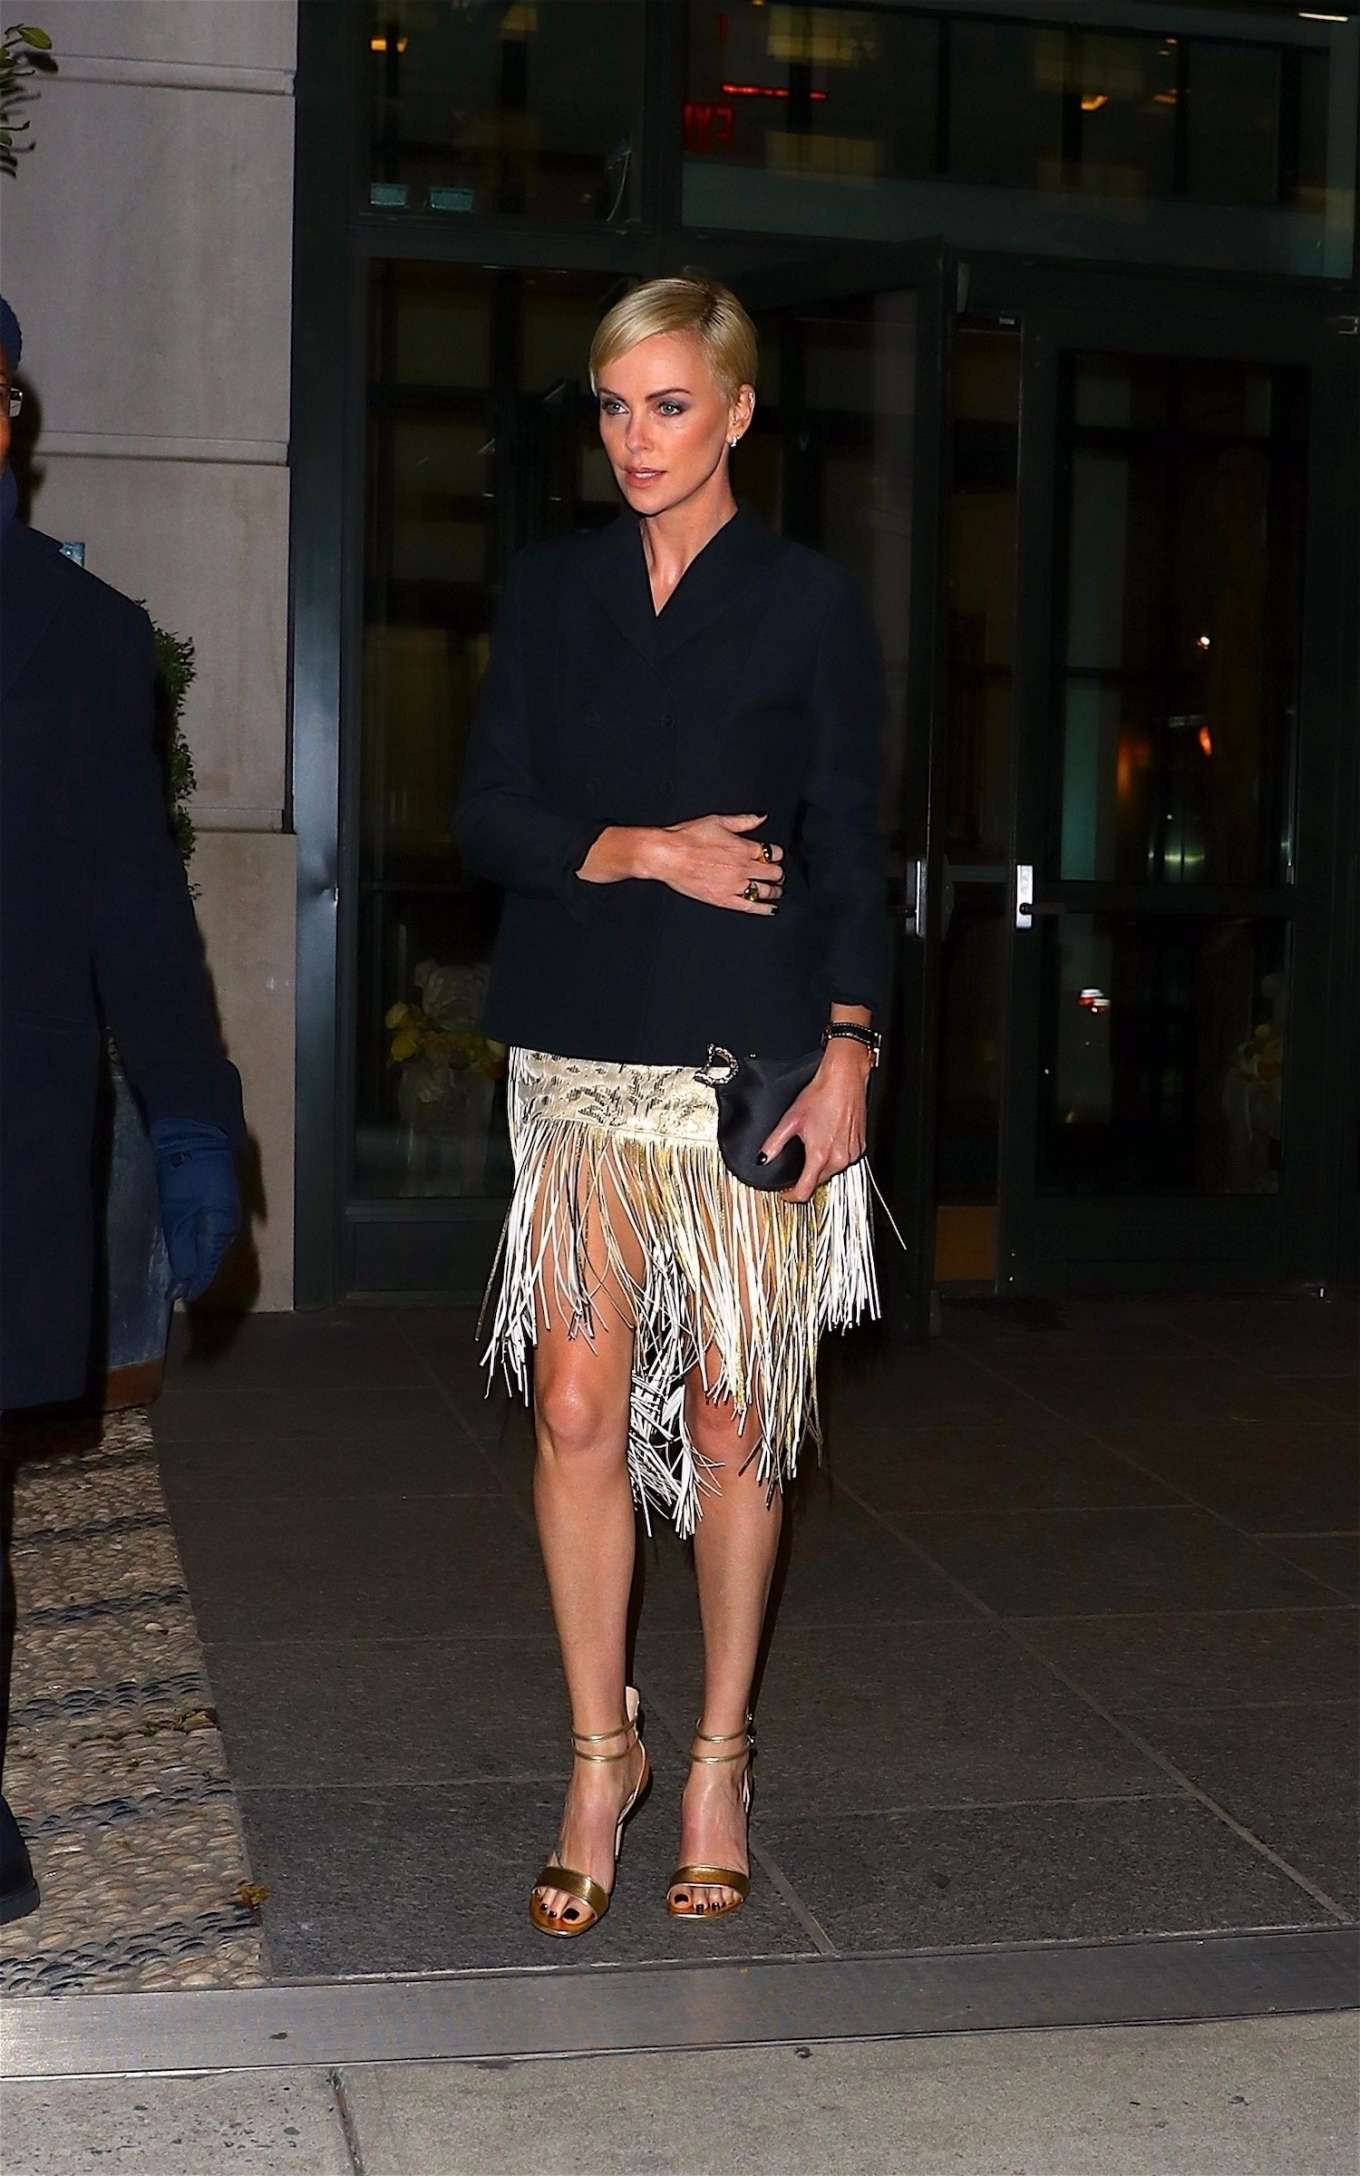 Charlize Theron 2019 : Charlize Theron – Heads to an event in New York City-02